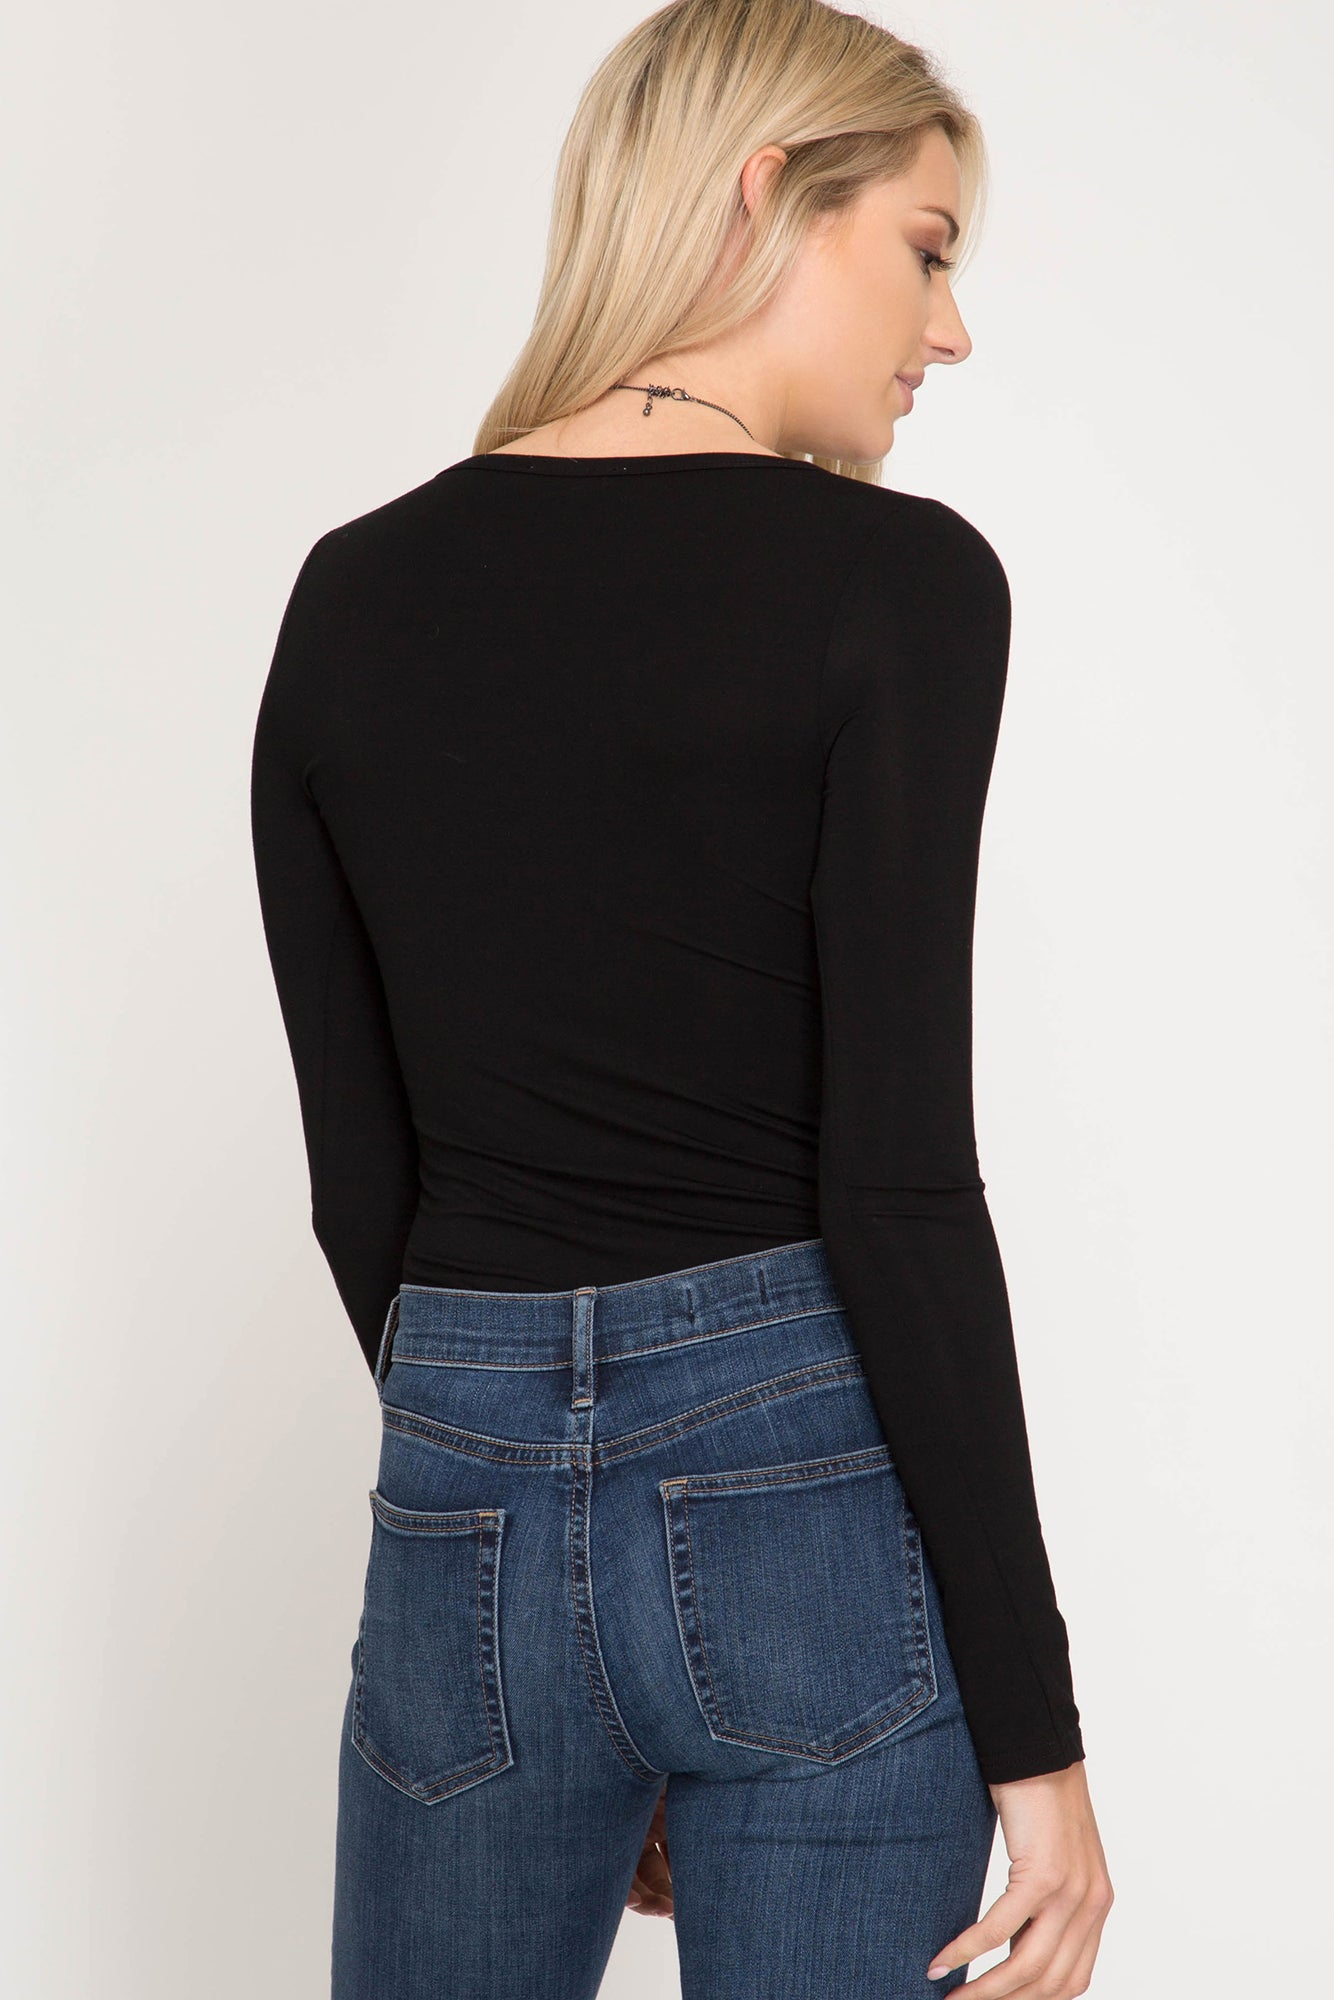 Basics: Black Long Sleeve